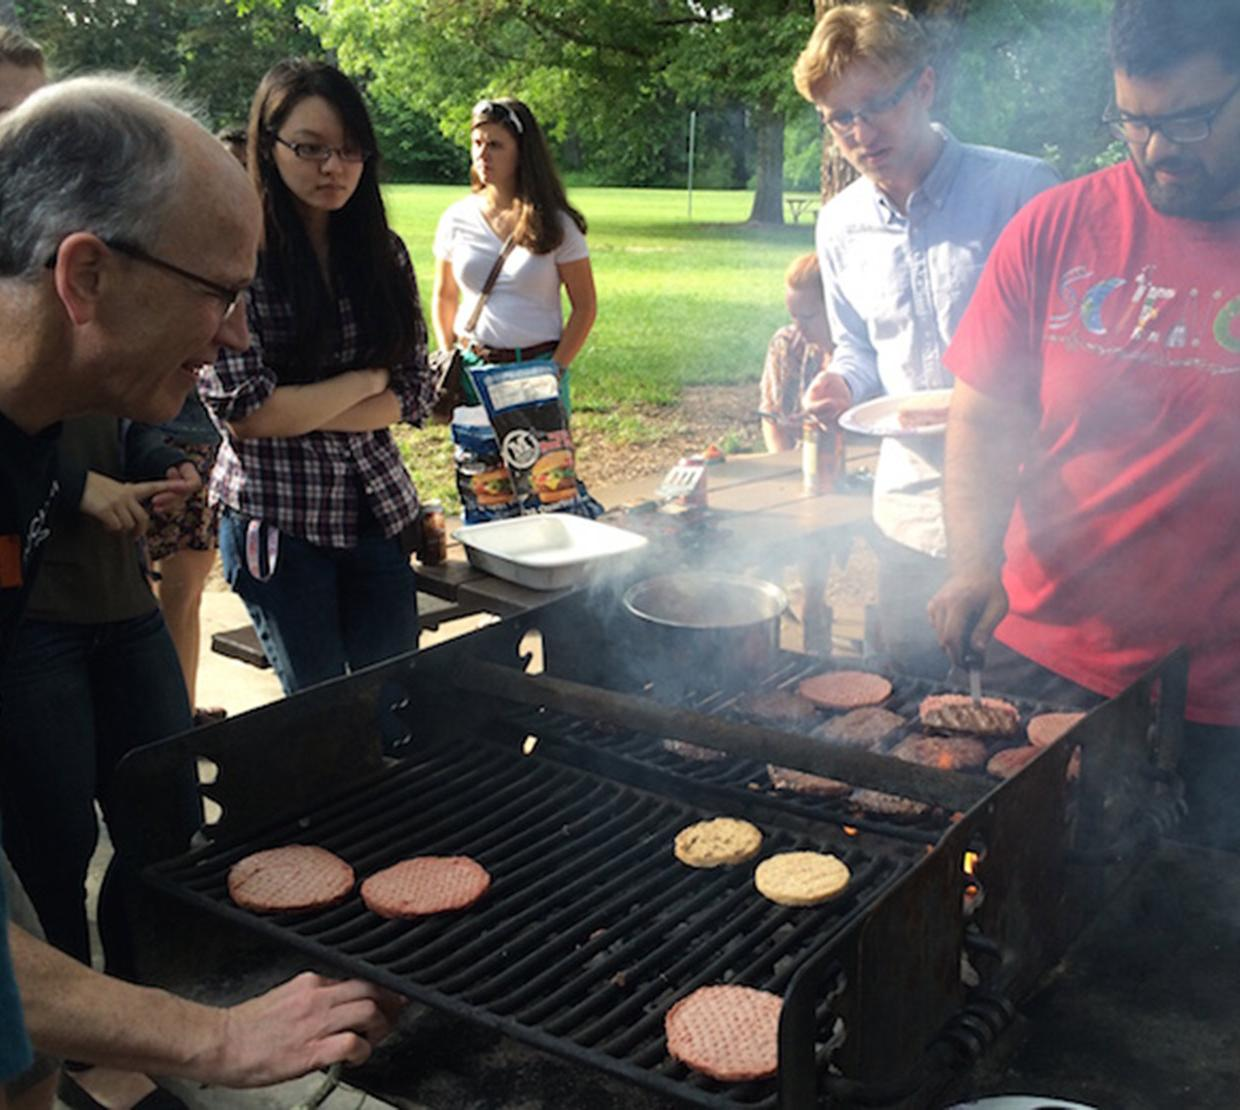 Andy Karplus and students grilling burgers in park